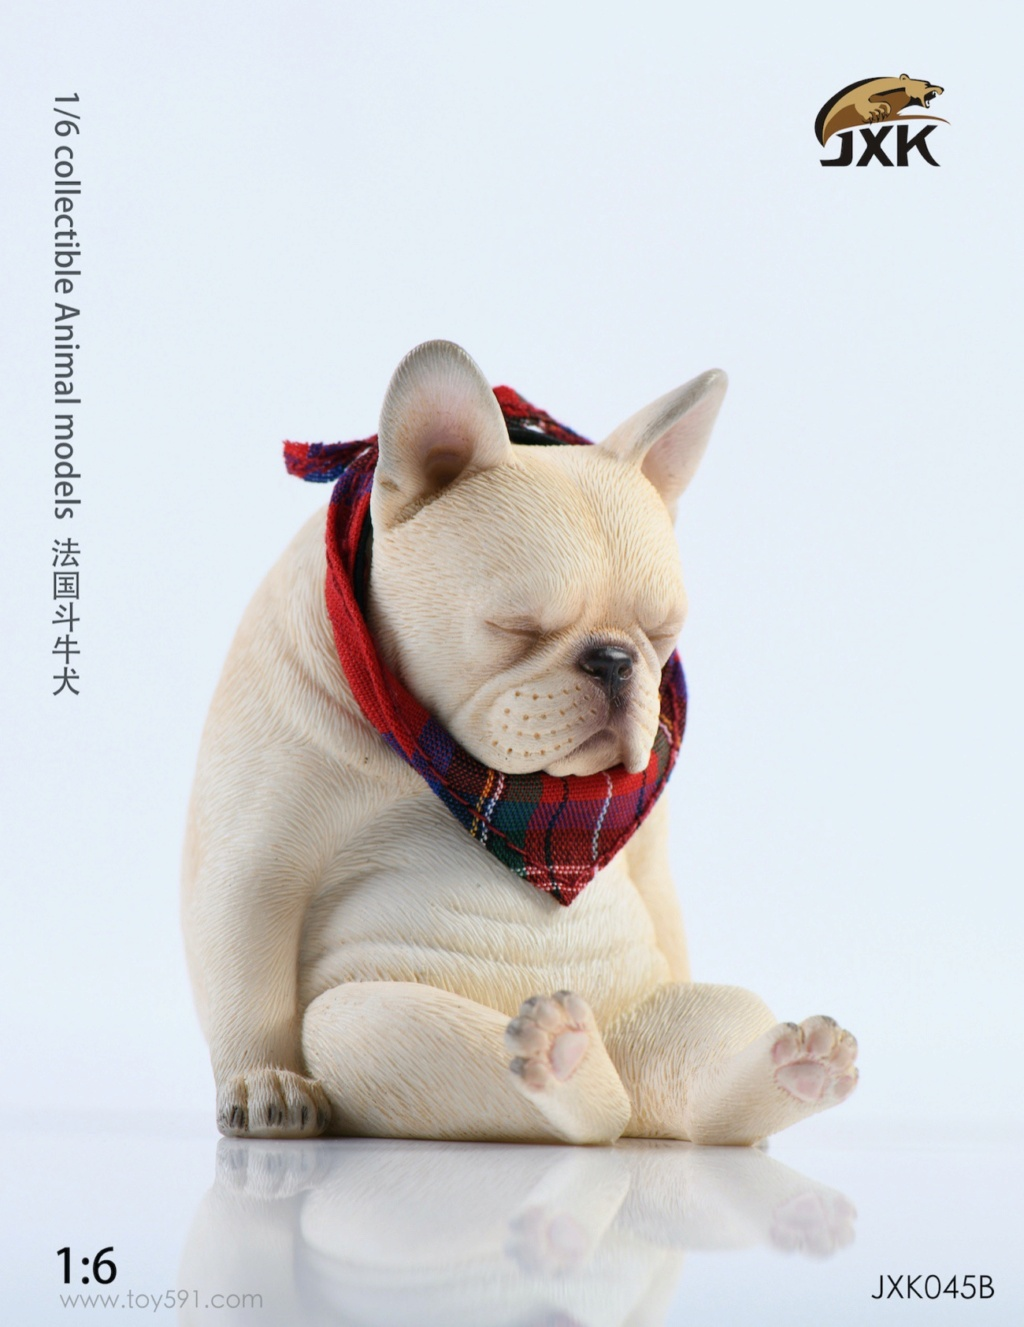 Dog - NEW PRODUCT: JXK 1/6 Decadent Dog JXK045 French Bulldog + Scarf Eca7b210